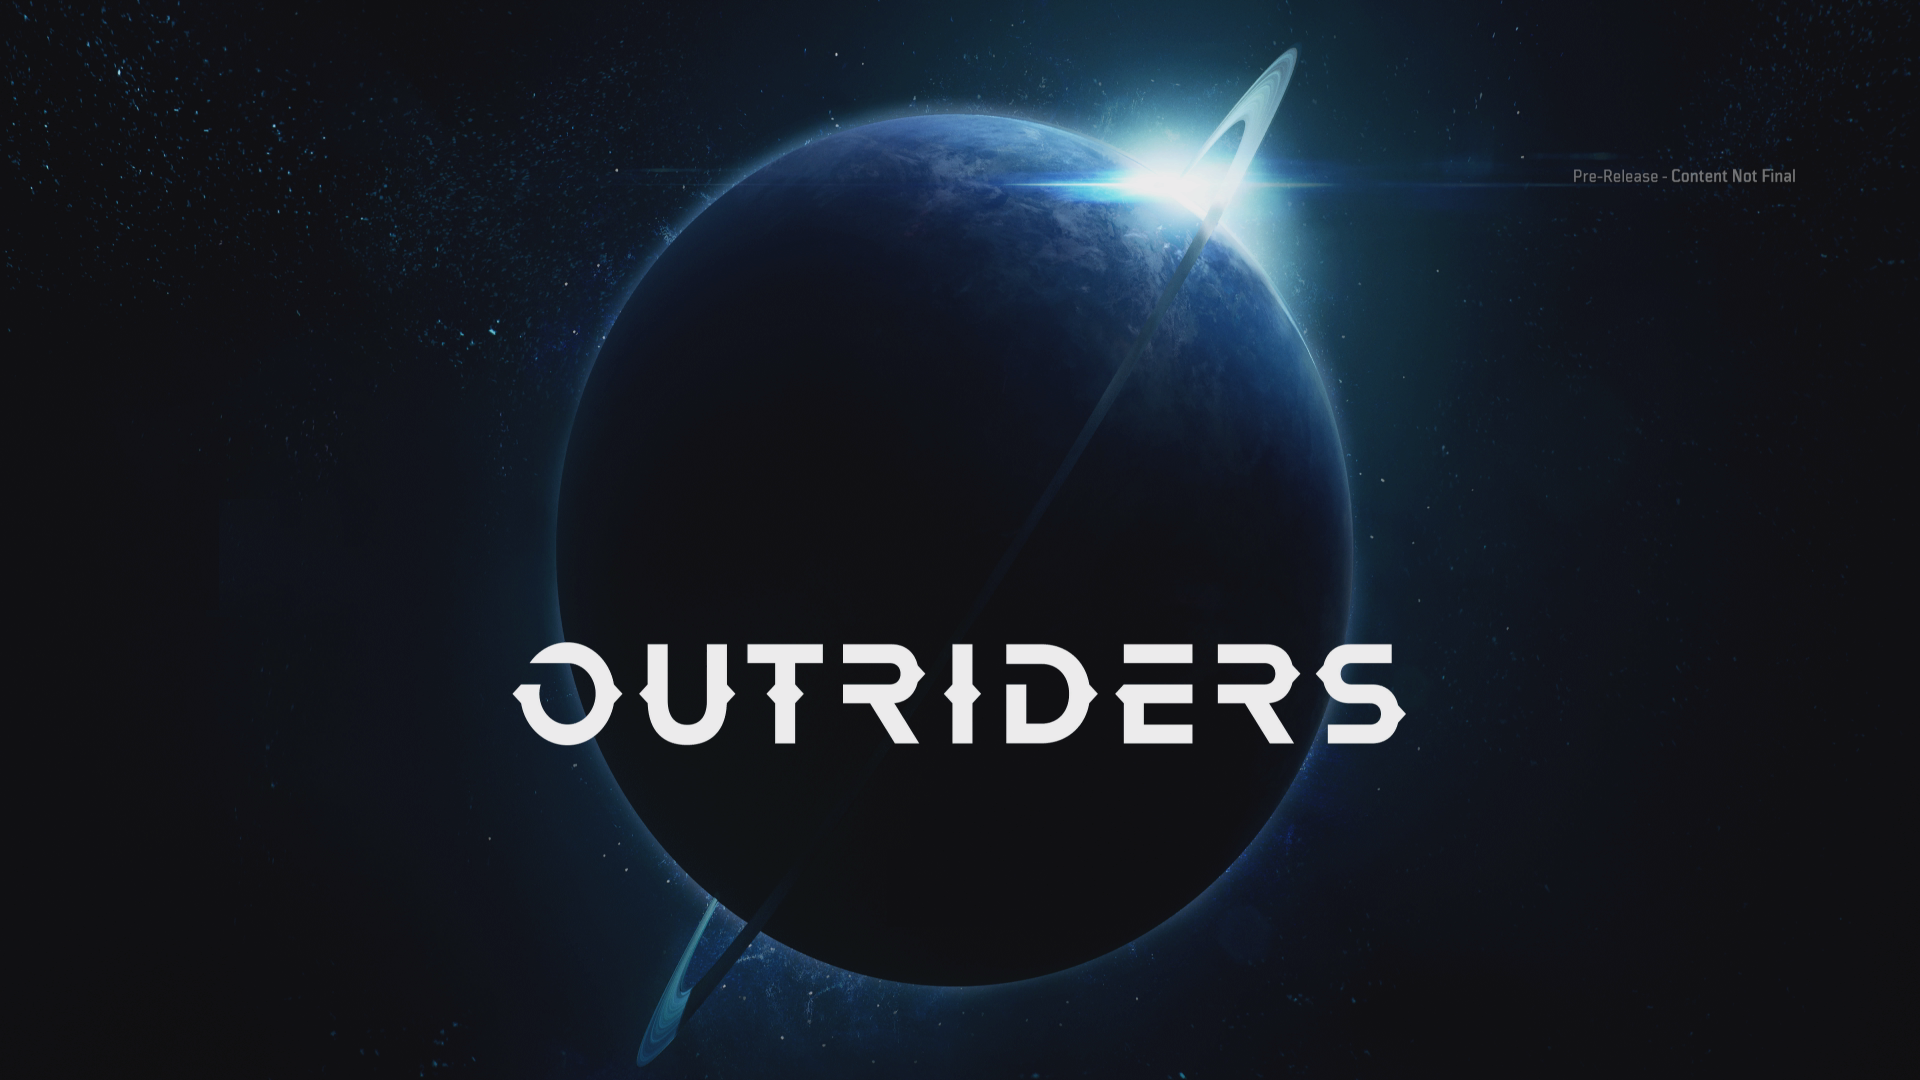 Outriders Patch Due Next Week, Will Enable Crossplay, Fix Stuttering and Bugs